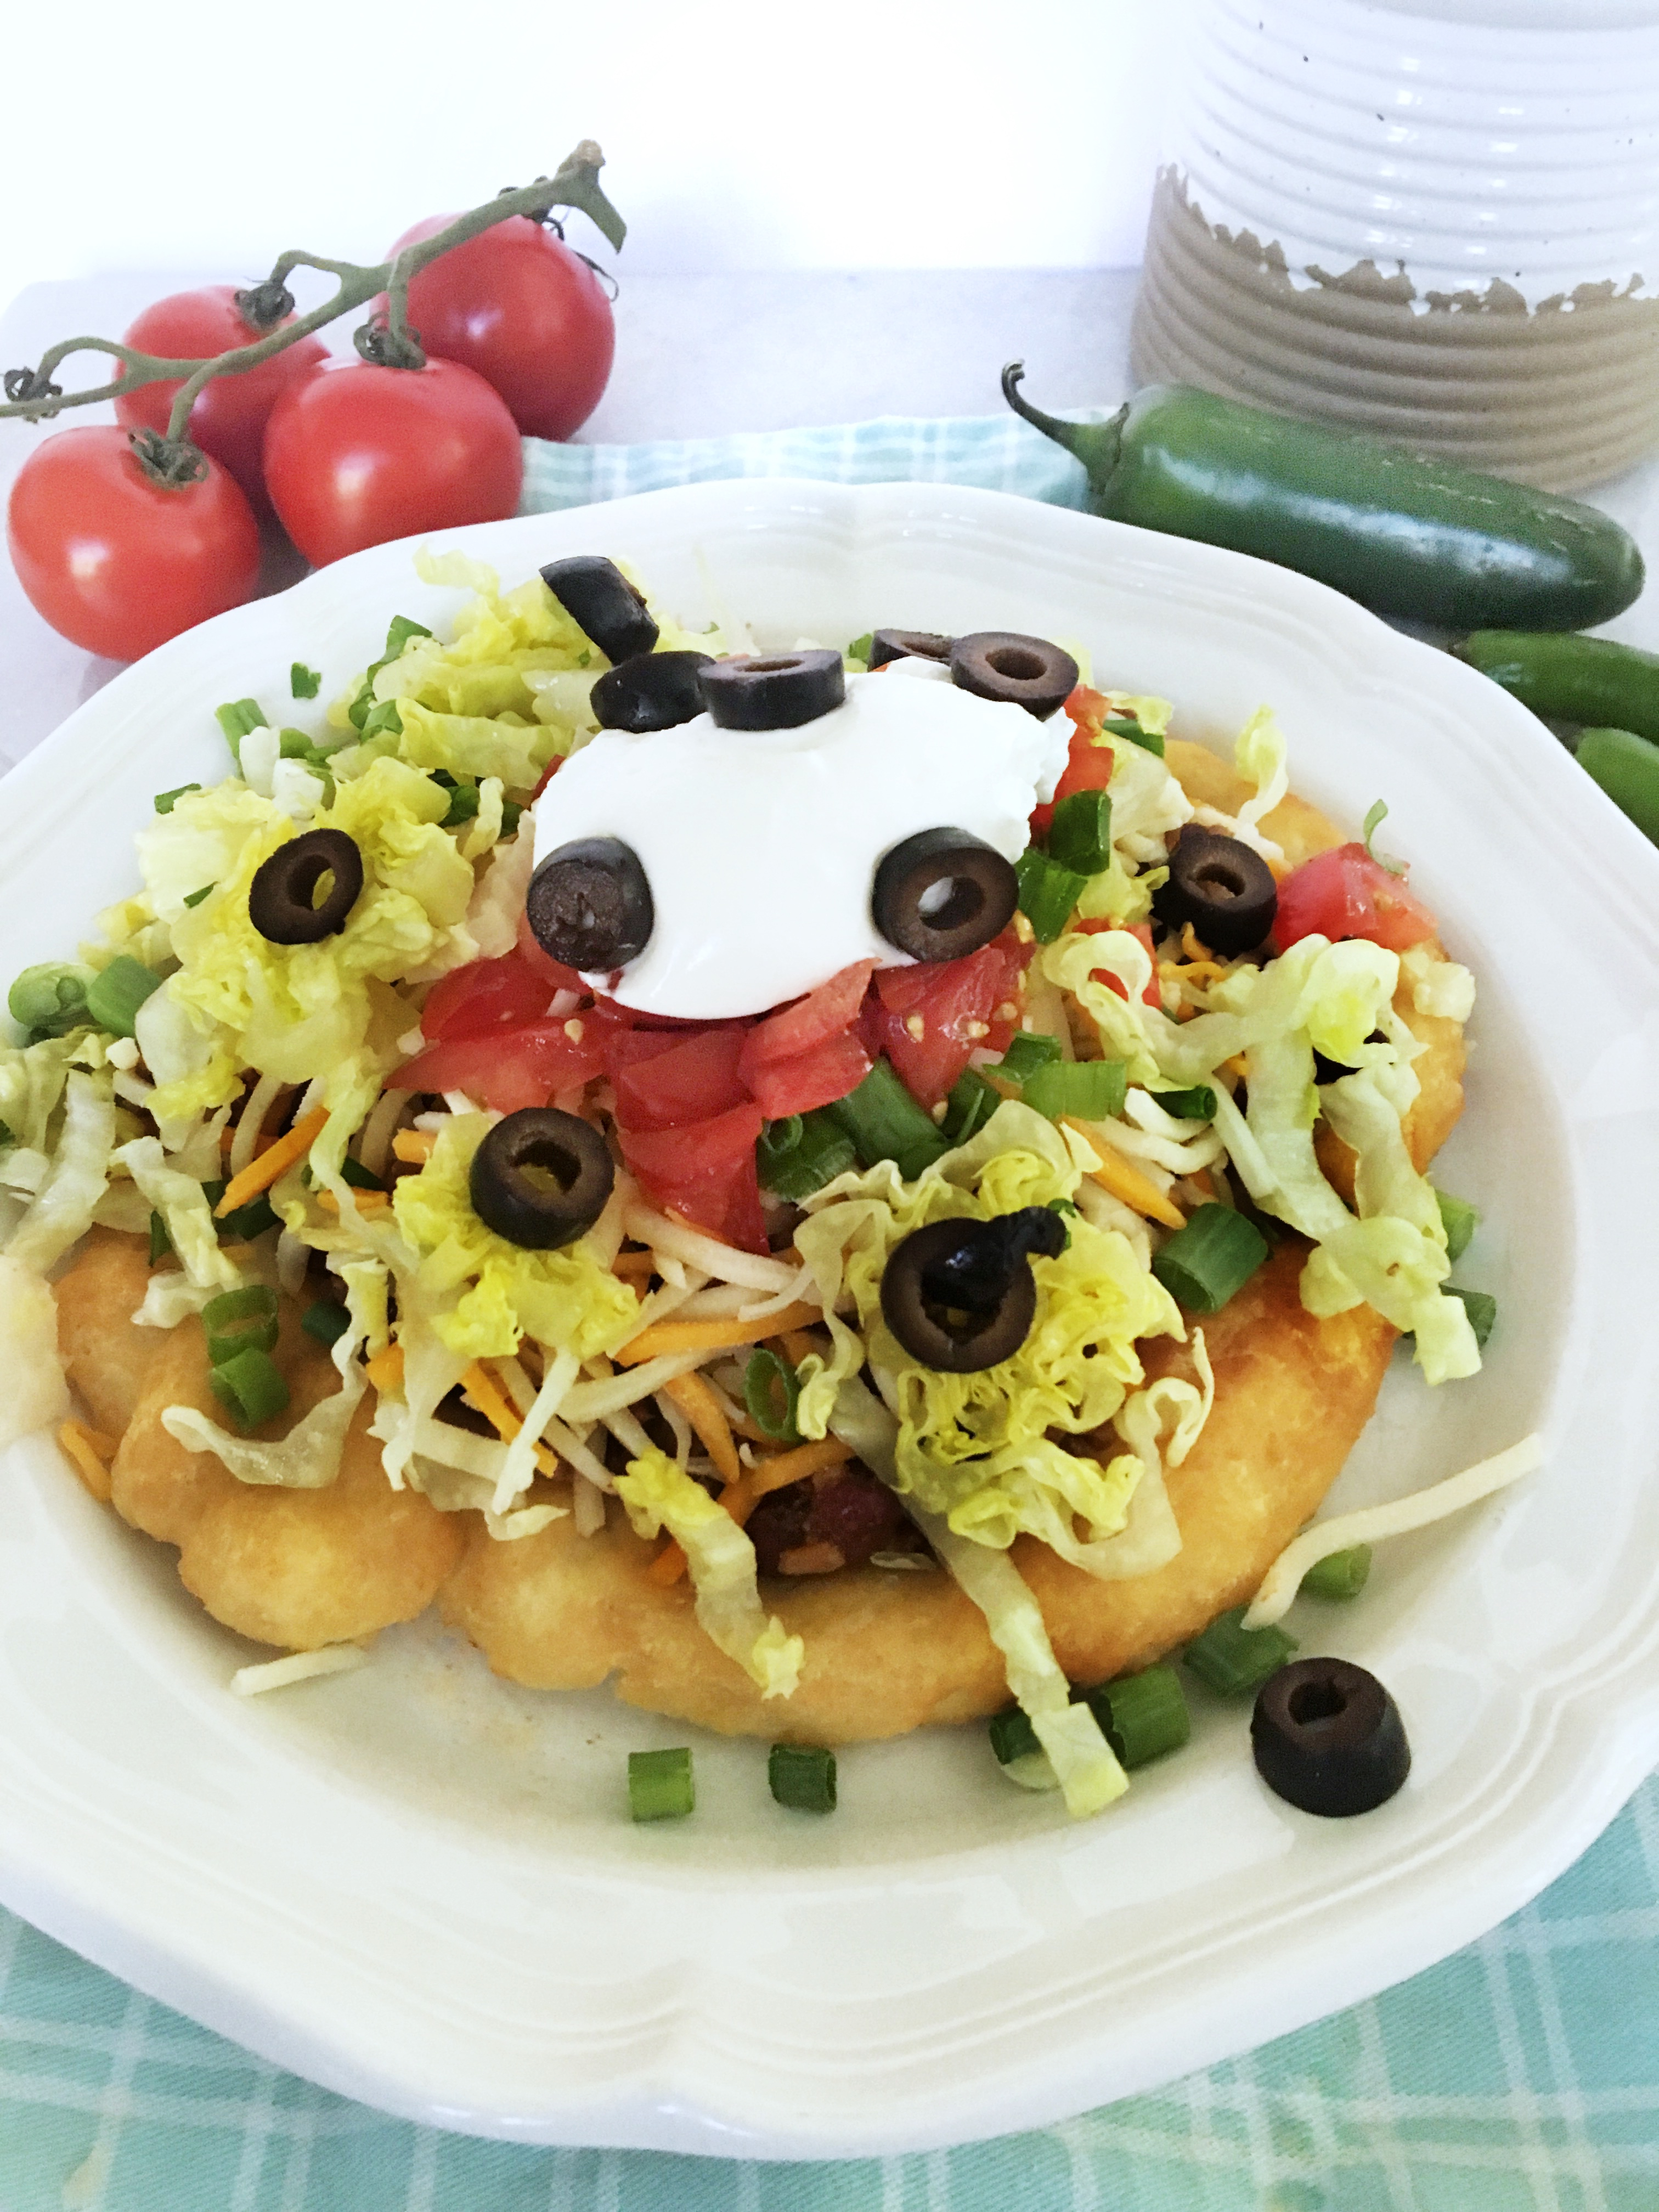 Navajo Tacos with toppings